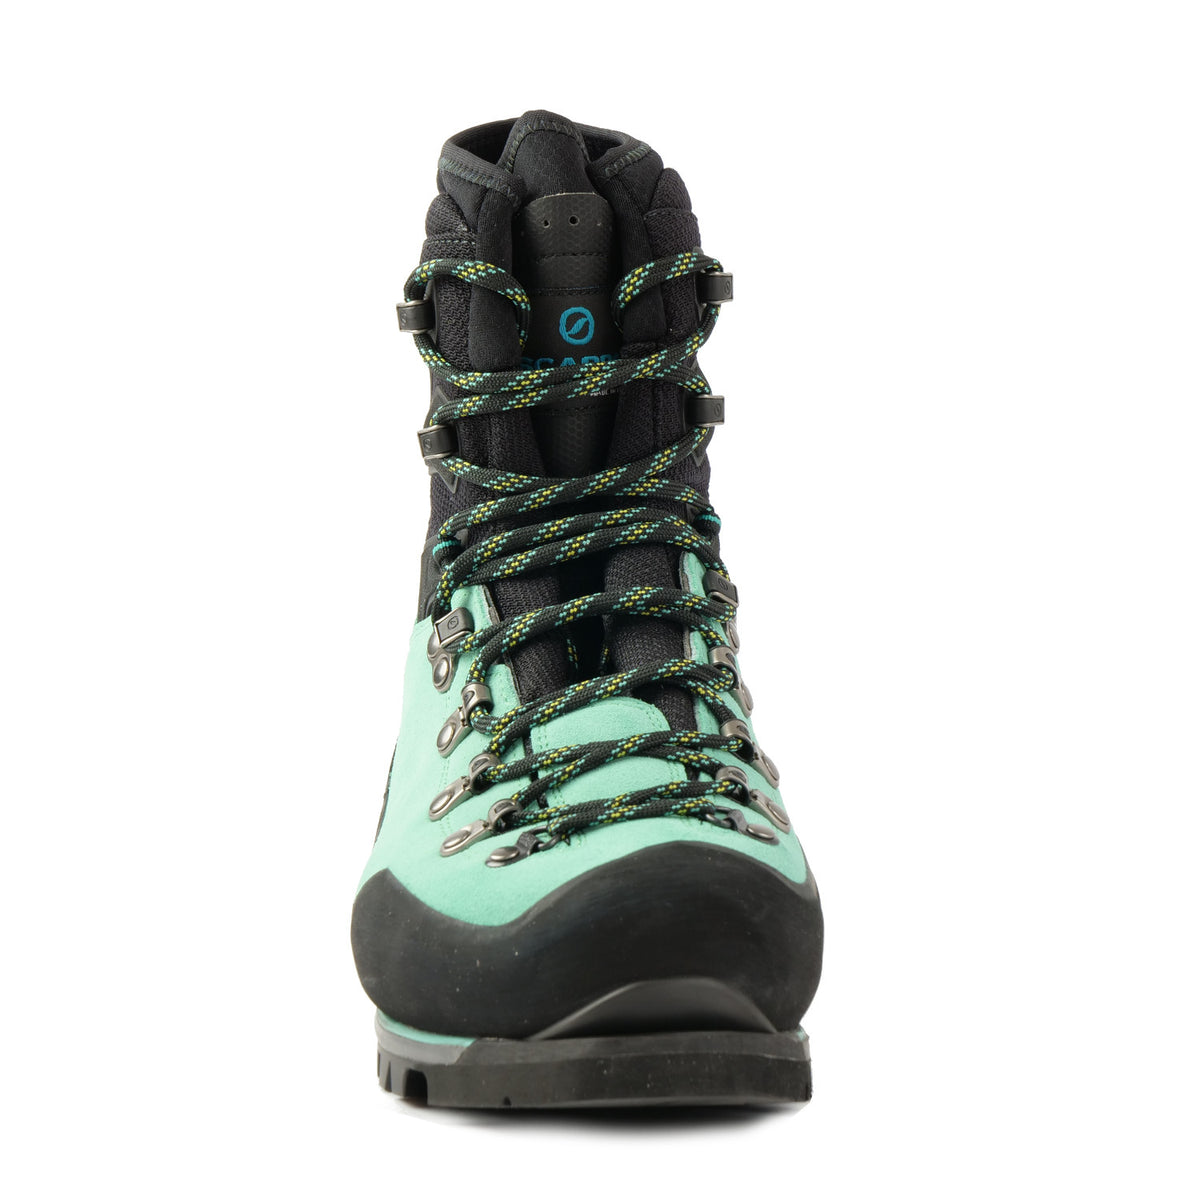 Front view a Scarpa Mont Blanc Pro GTX Womens with Mint Green Perwanger outer and black rubber and flexible sock and tongue